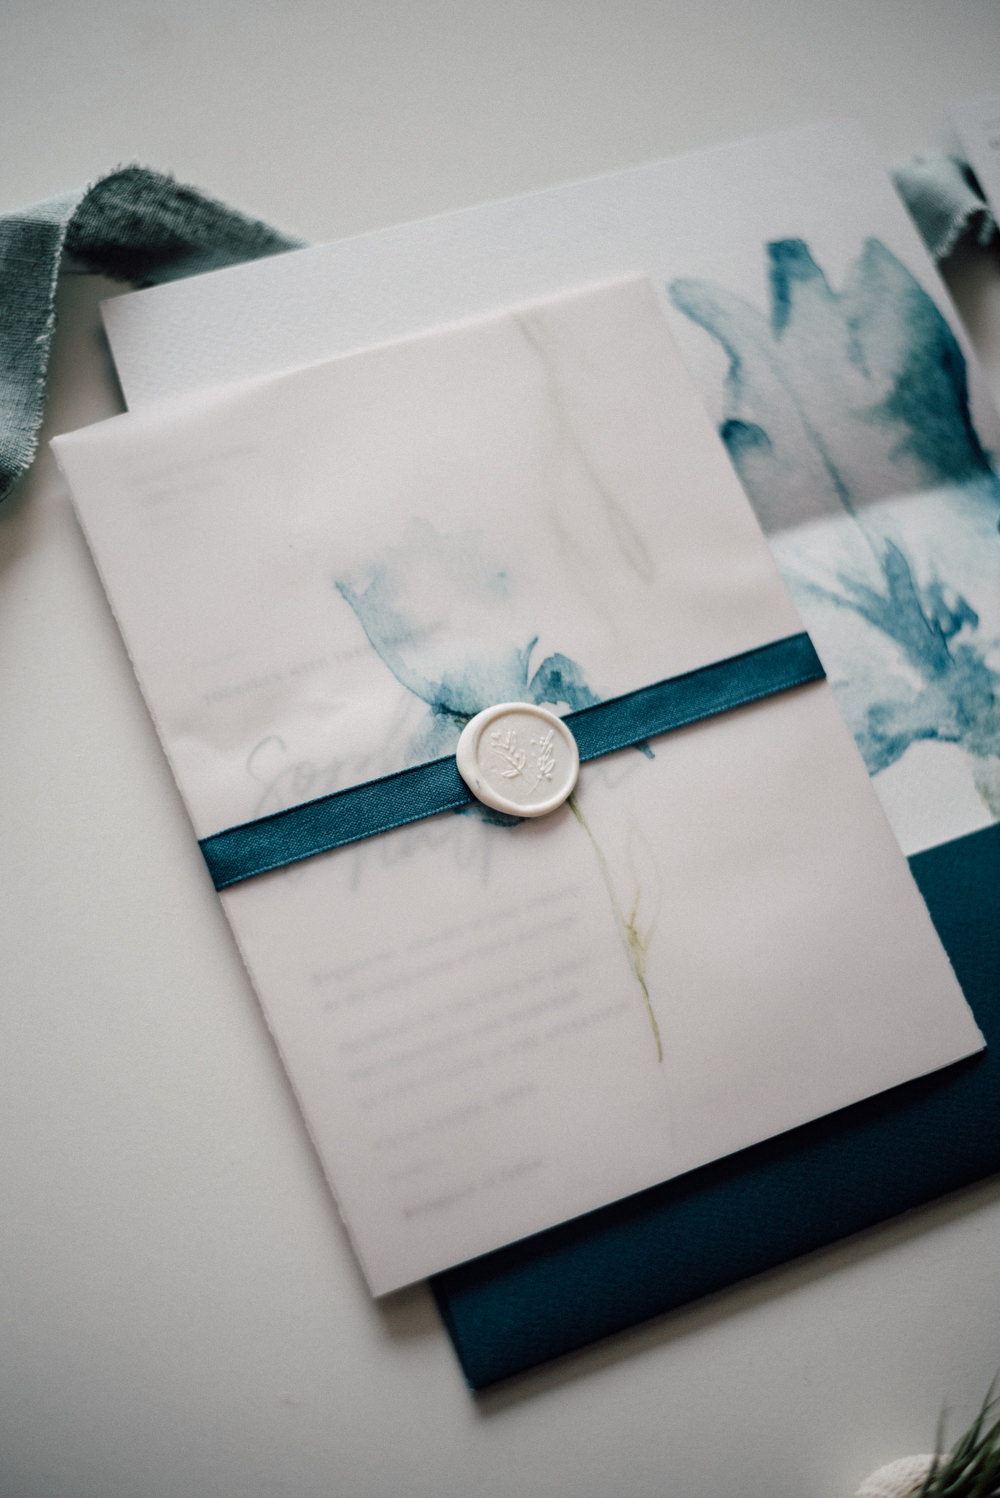 Outdoor Wild Nature Destination Spain Europe Coastal Styled Shoot Beach Stationery Watercolor Styling White Wax Seal   Blue Ibiza Elopement Ideas and Surprise Proposal Serena Genovese Photography